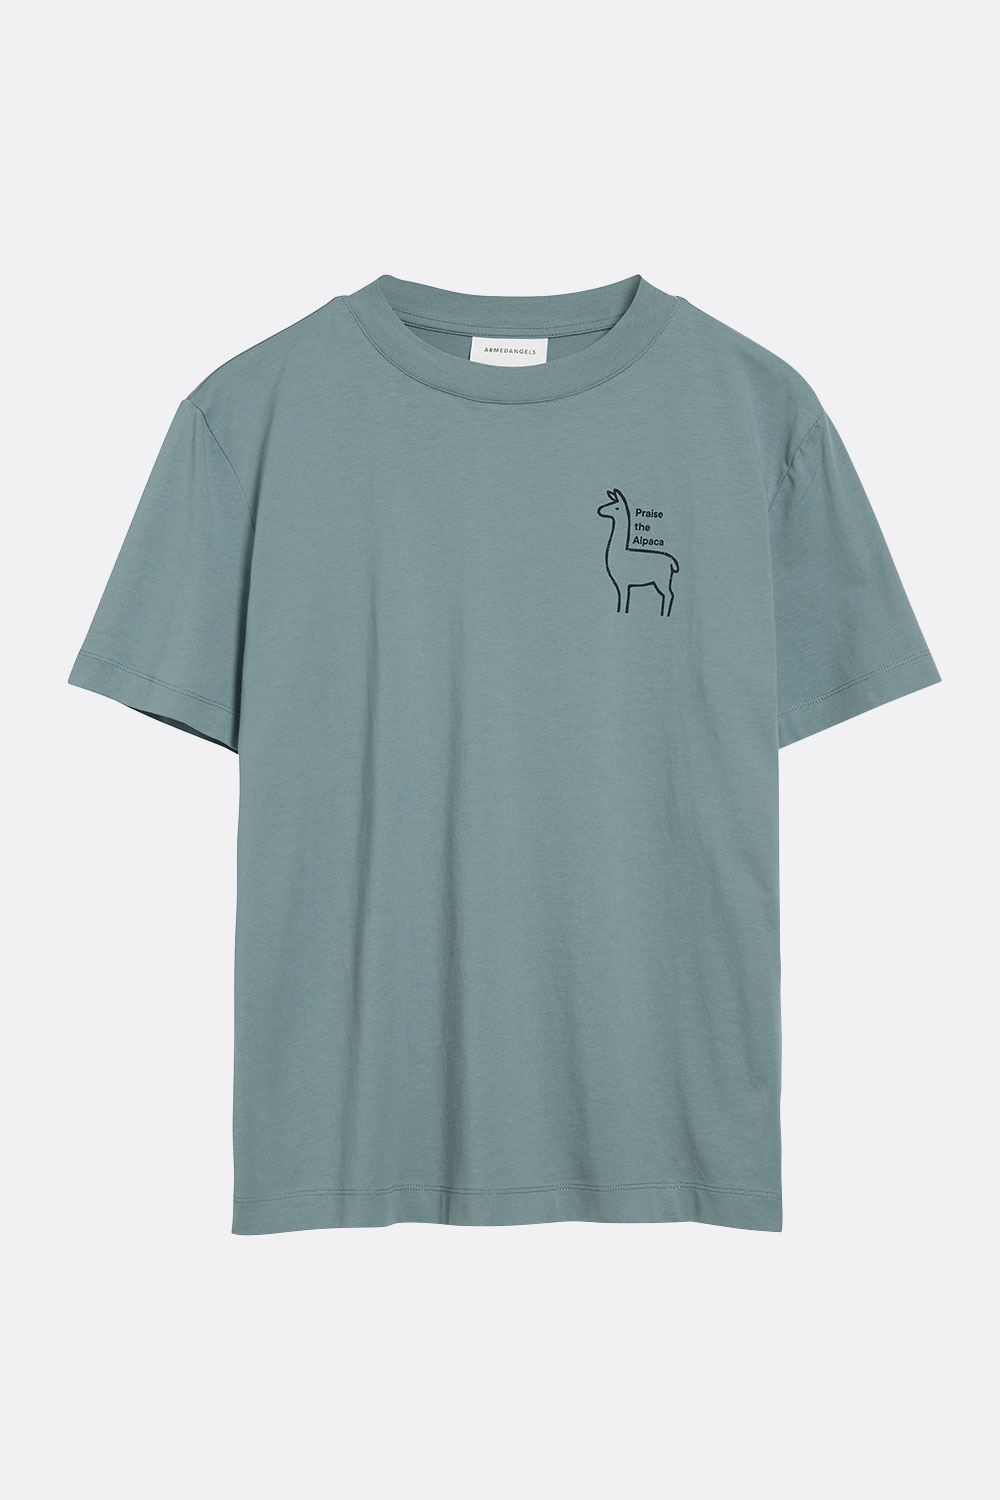 T-Shirt Praise the Alpaca